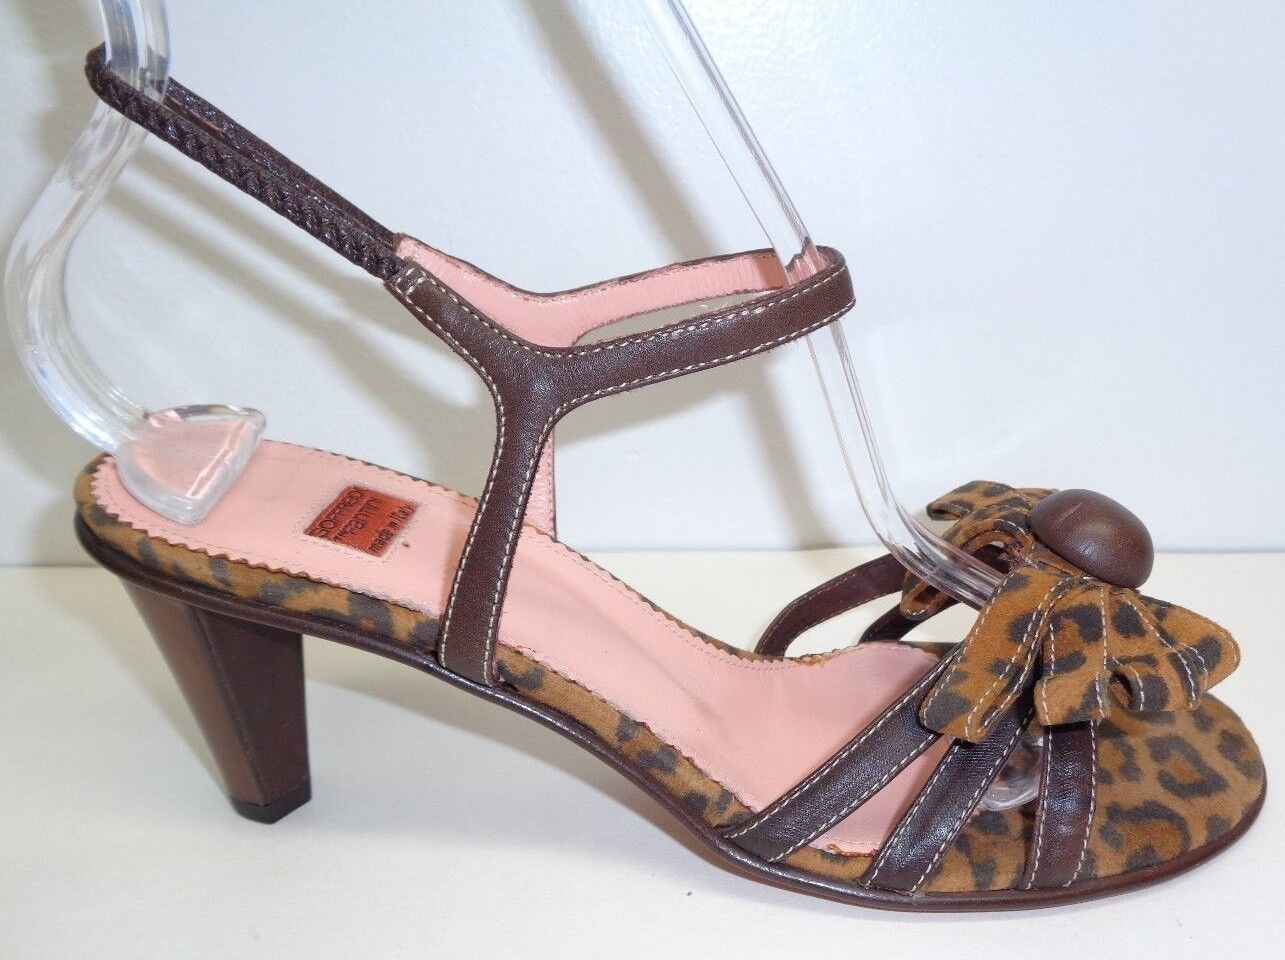 Goffredo Fantini Size 7 7.5 GENIUS KENYA Brown Leather Sandals New Womens shoes